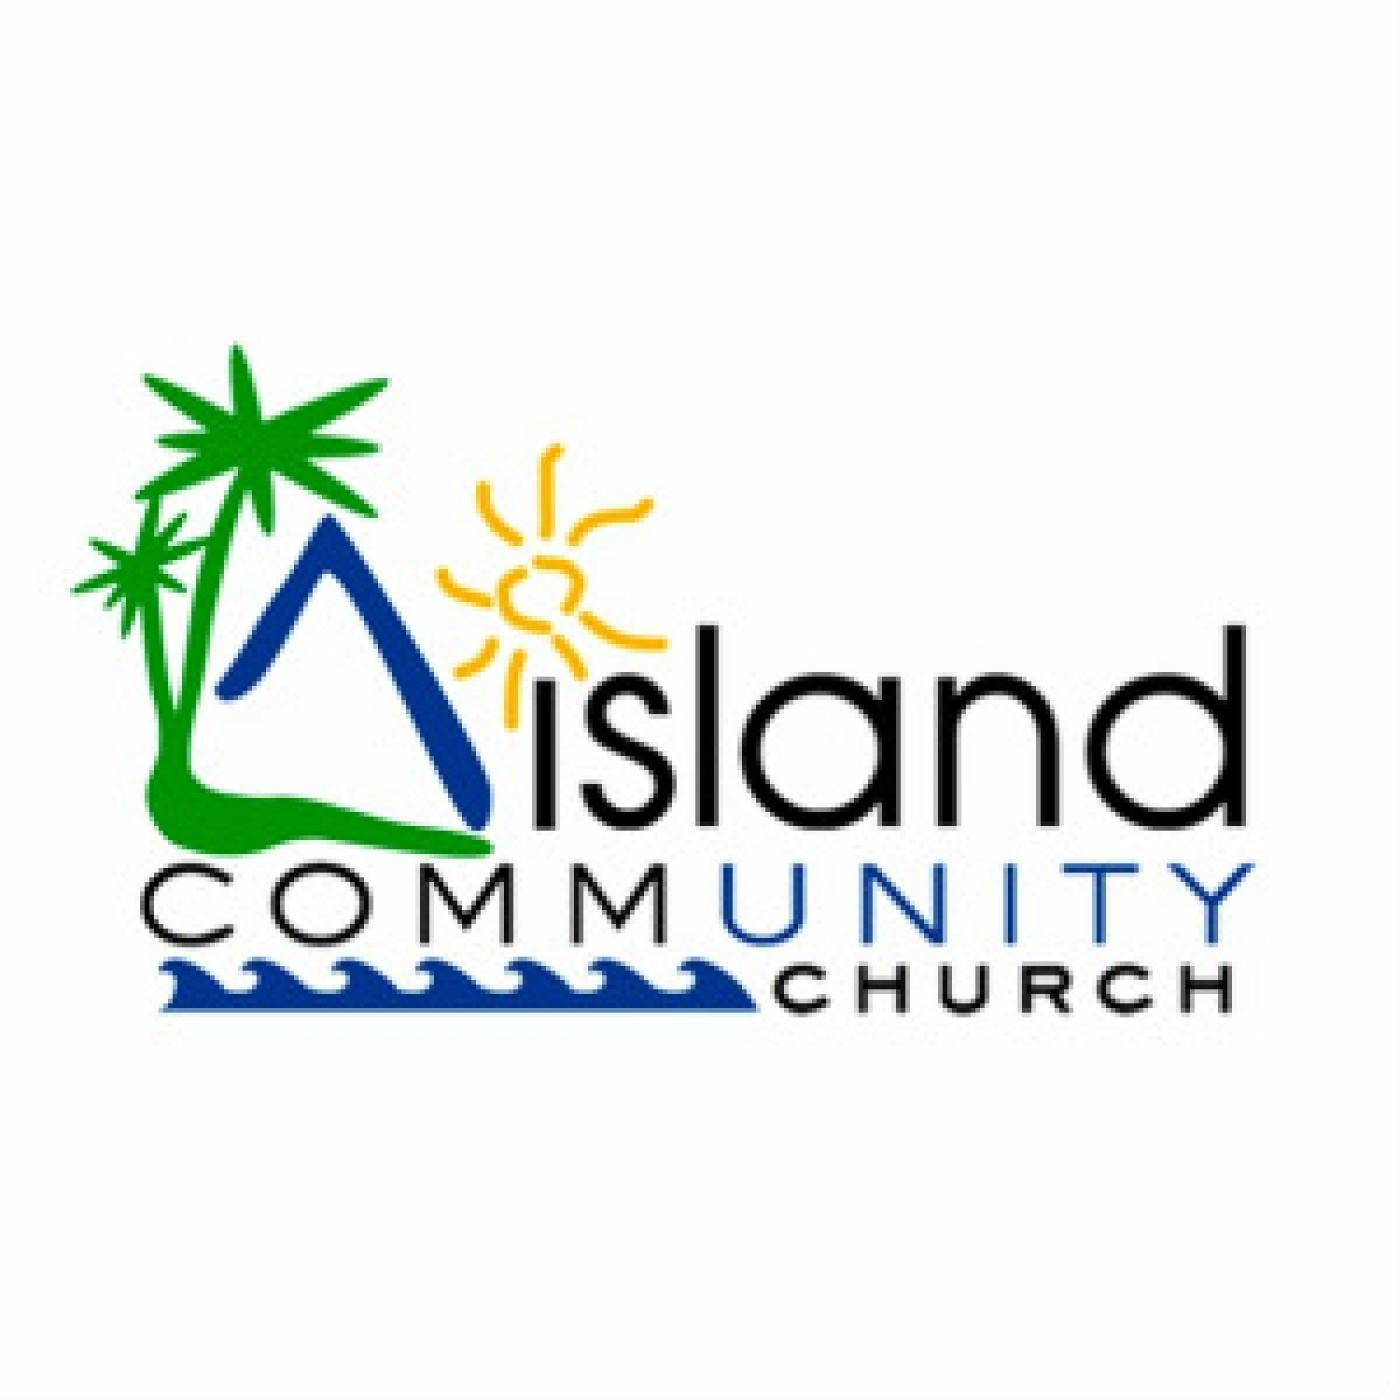 Island Community Church (Memphis)